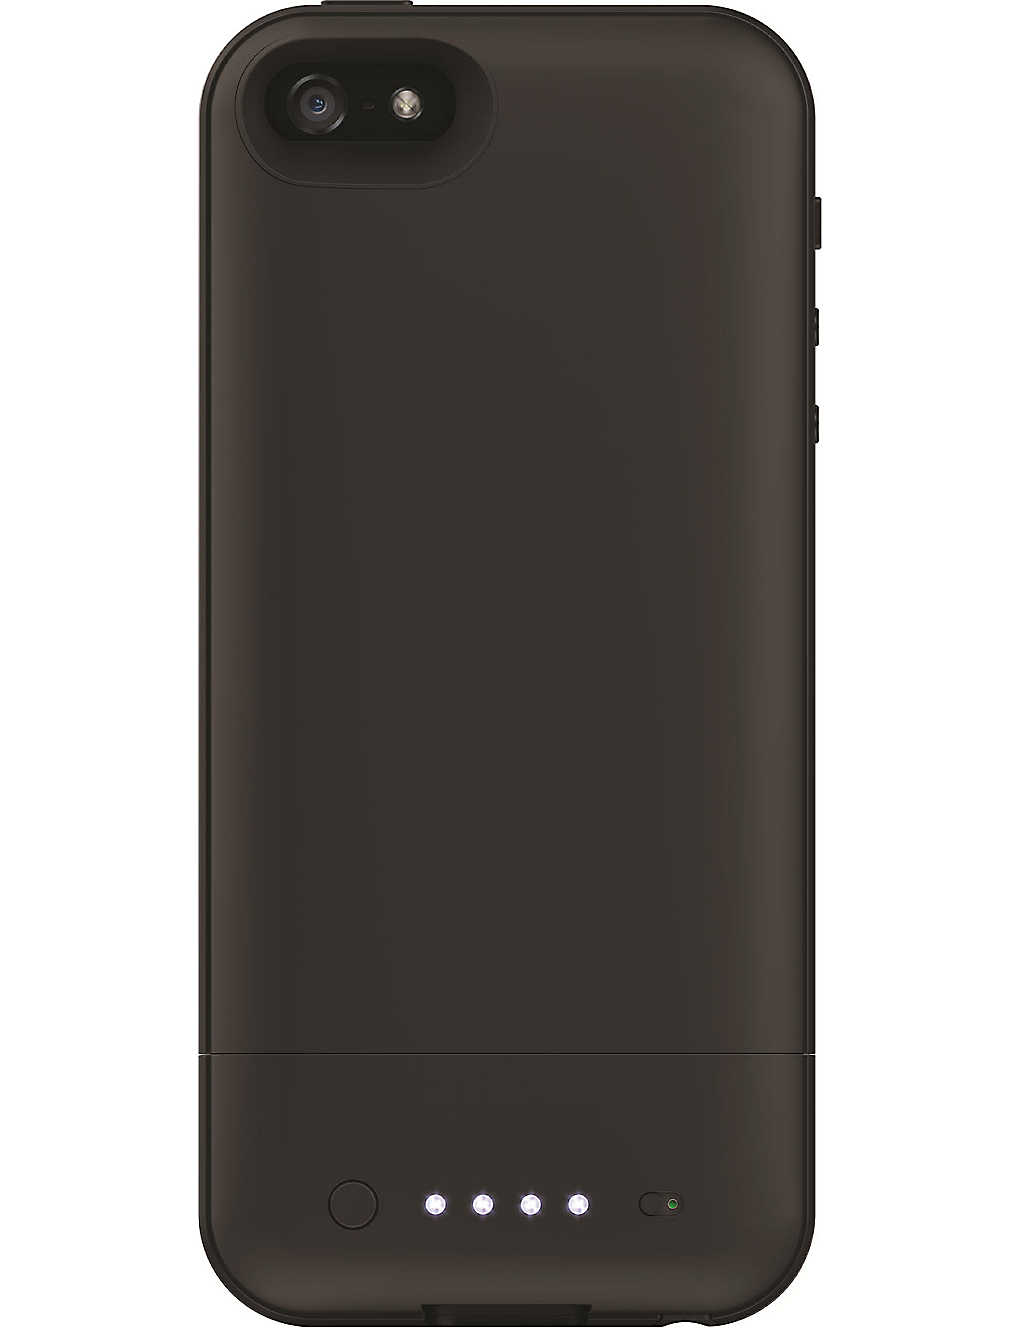 promo code 2eb14 08b01 MOPHIE - Air Juice Pack iPhone 5 battery case charger | Selfridges.com